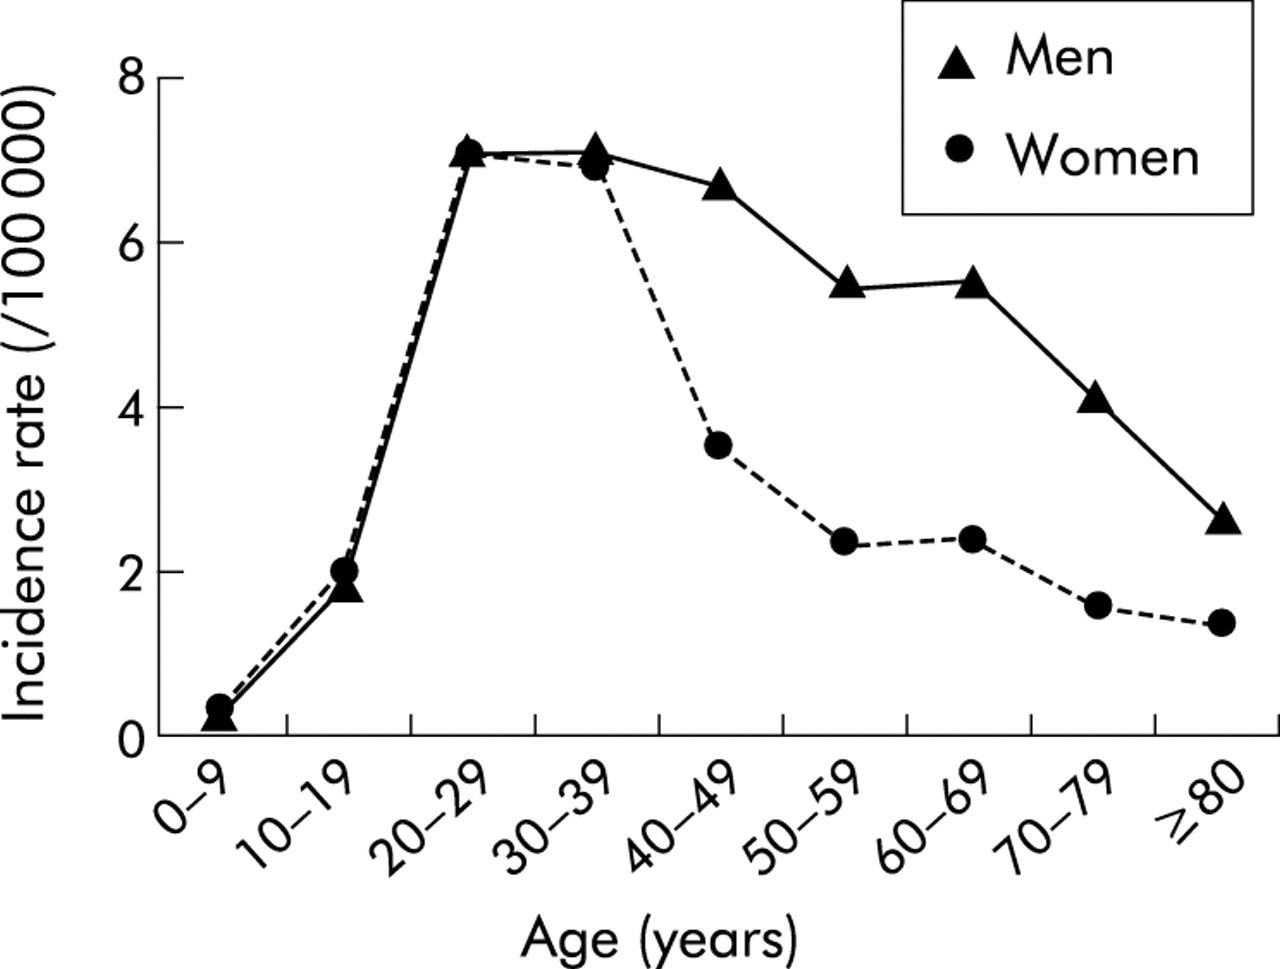 Opposite Evolution In Incidence Of Crohn S Disease And